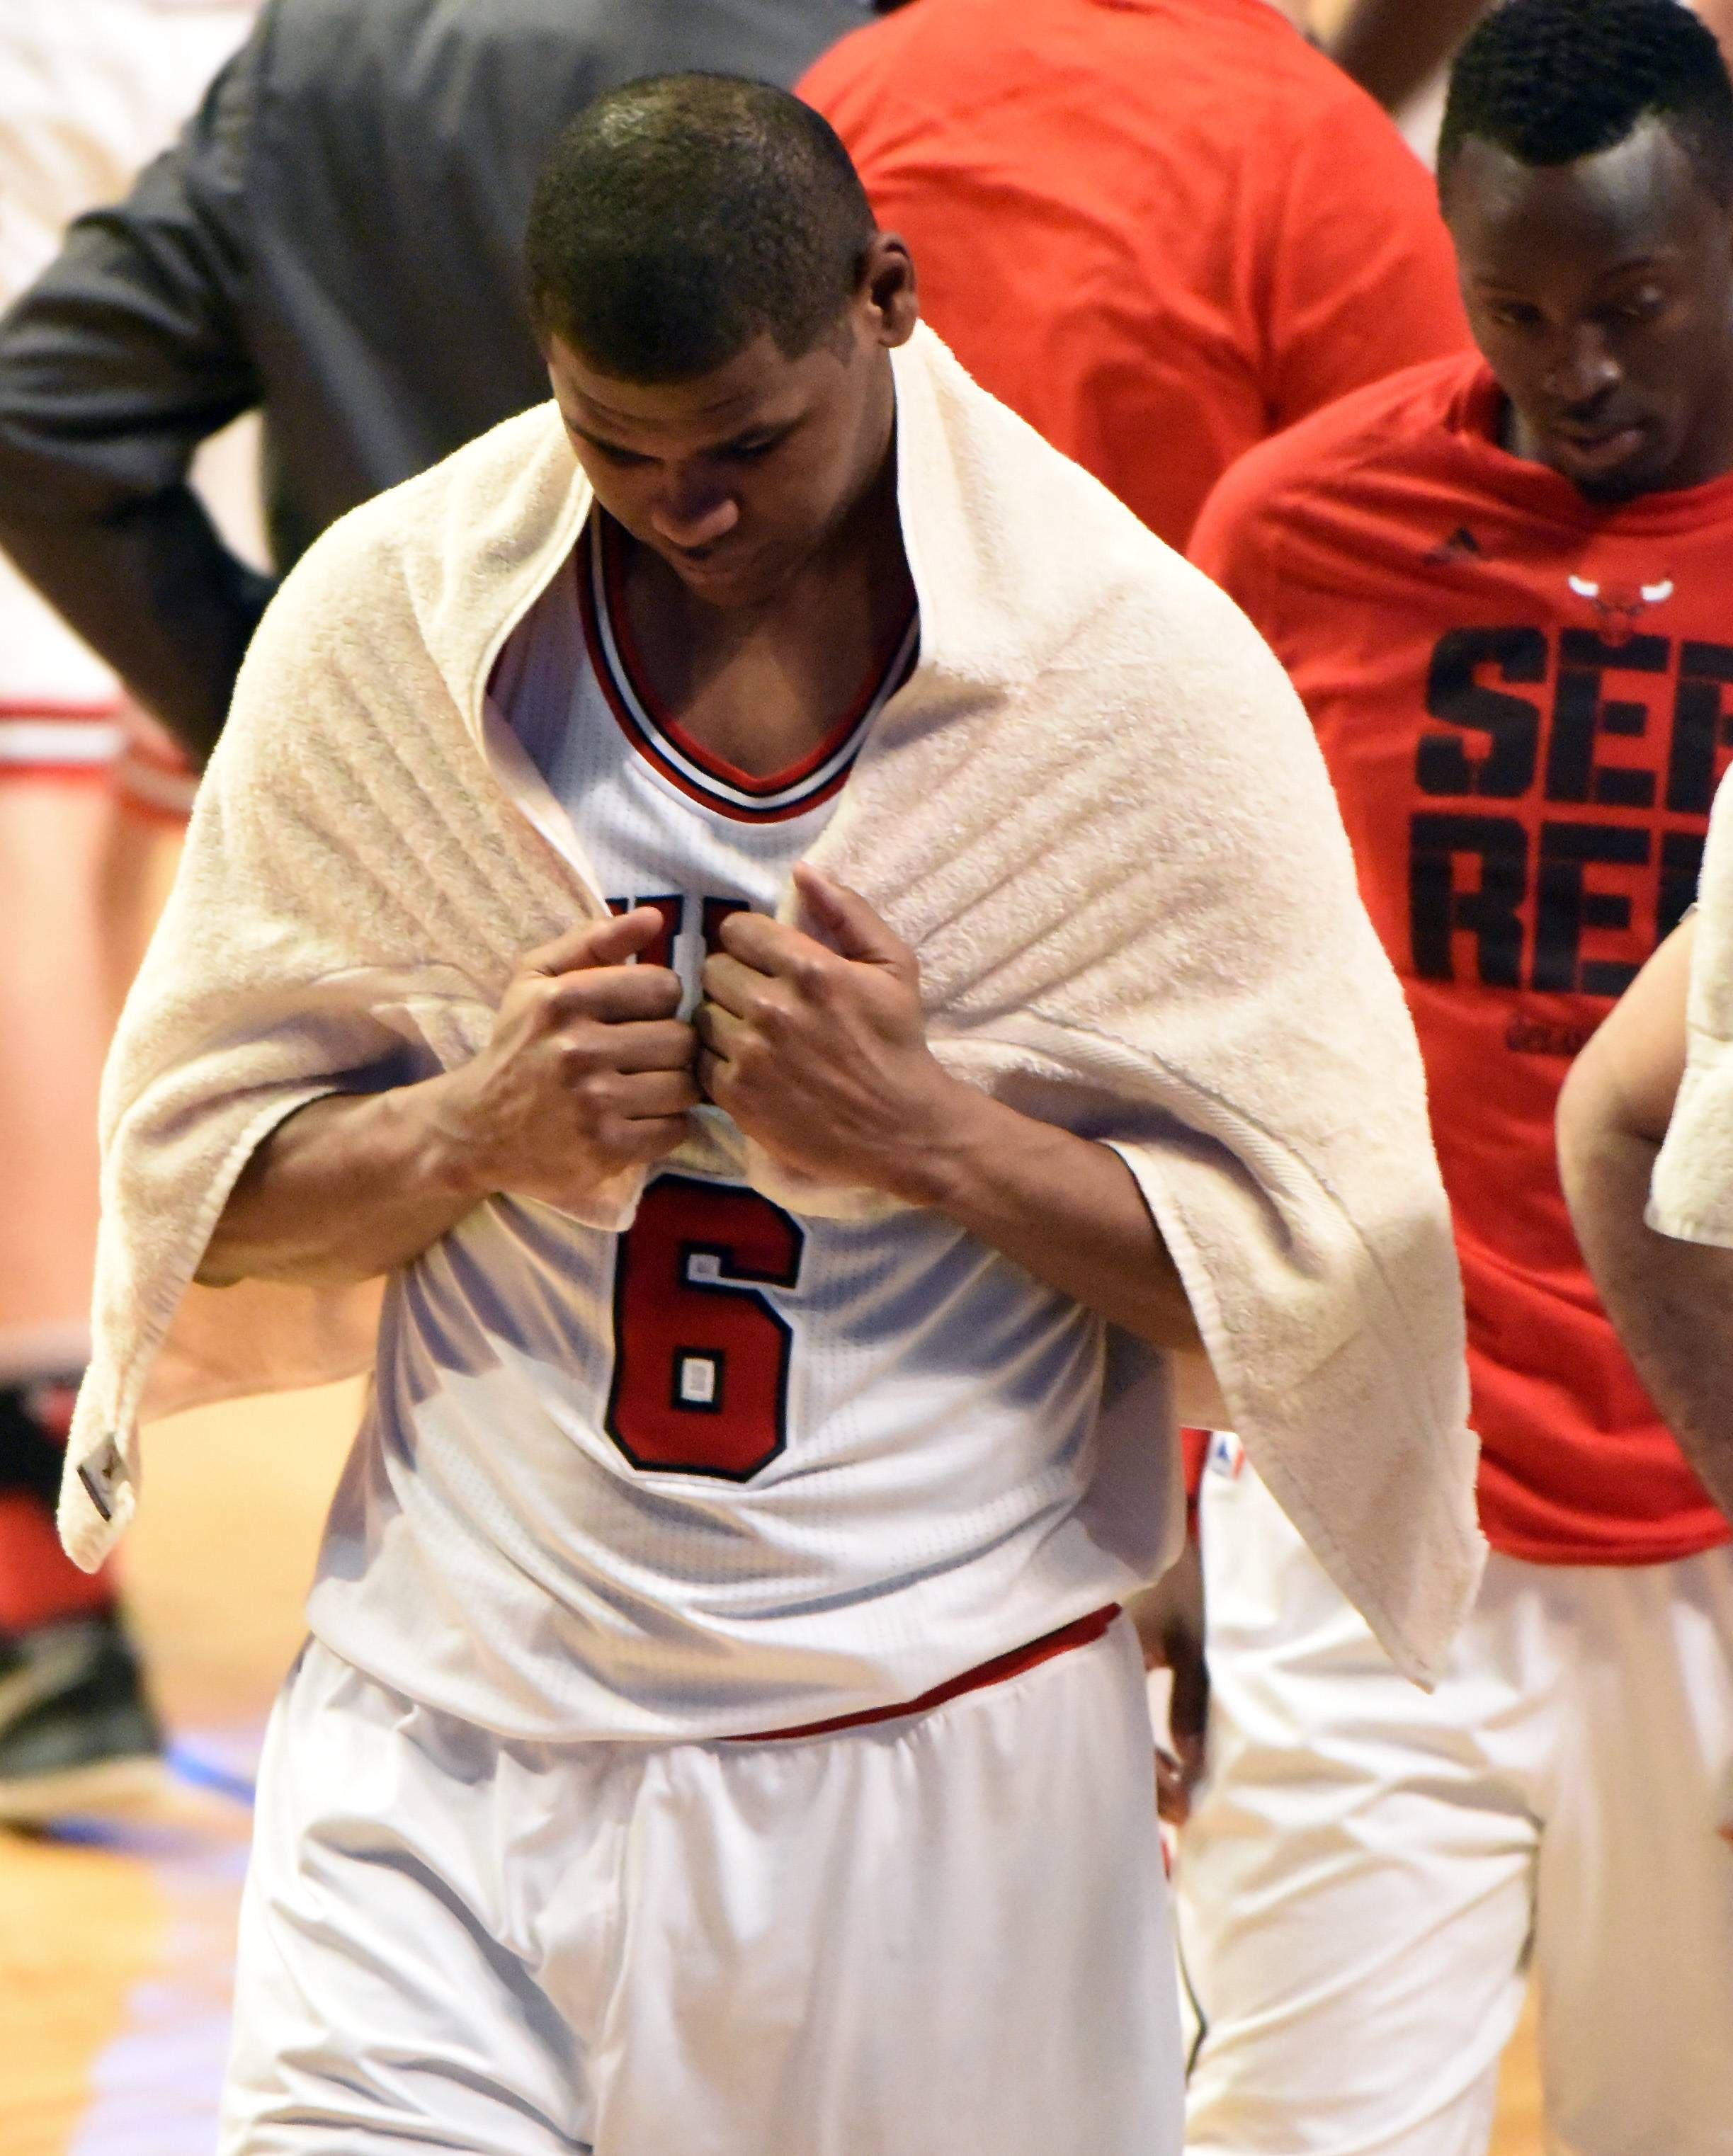 Chicago Bulls forward Cristiano Felicio (6) walks off the court Friday at the United Center in Chicago.